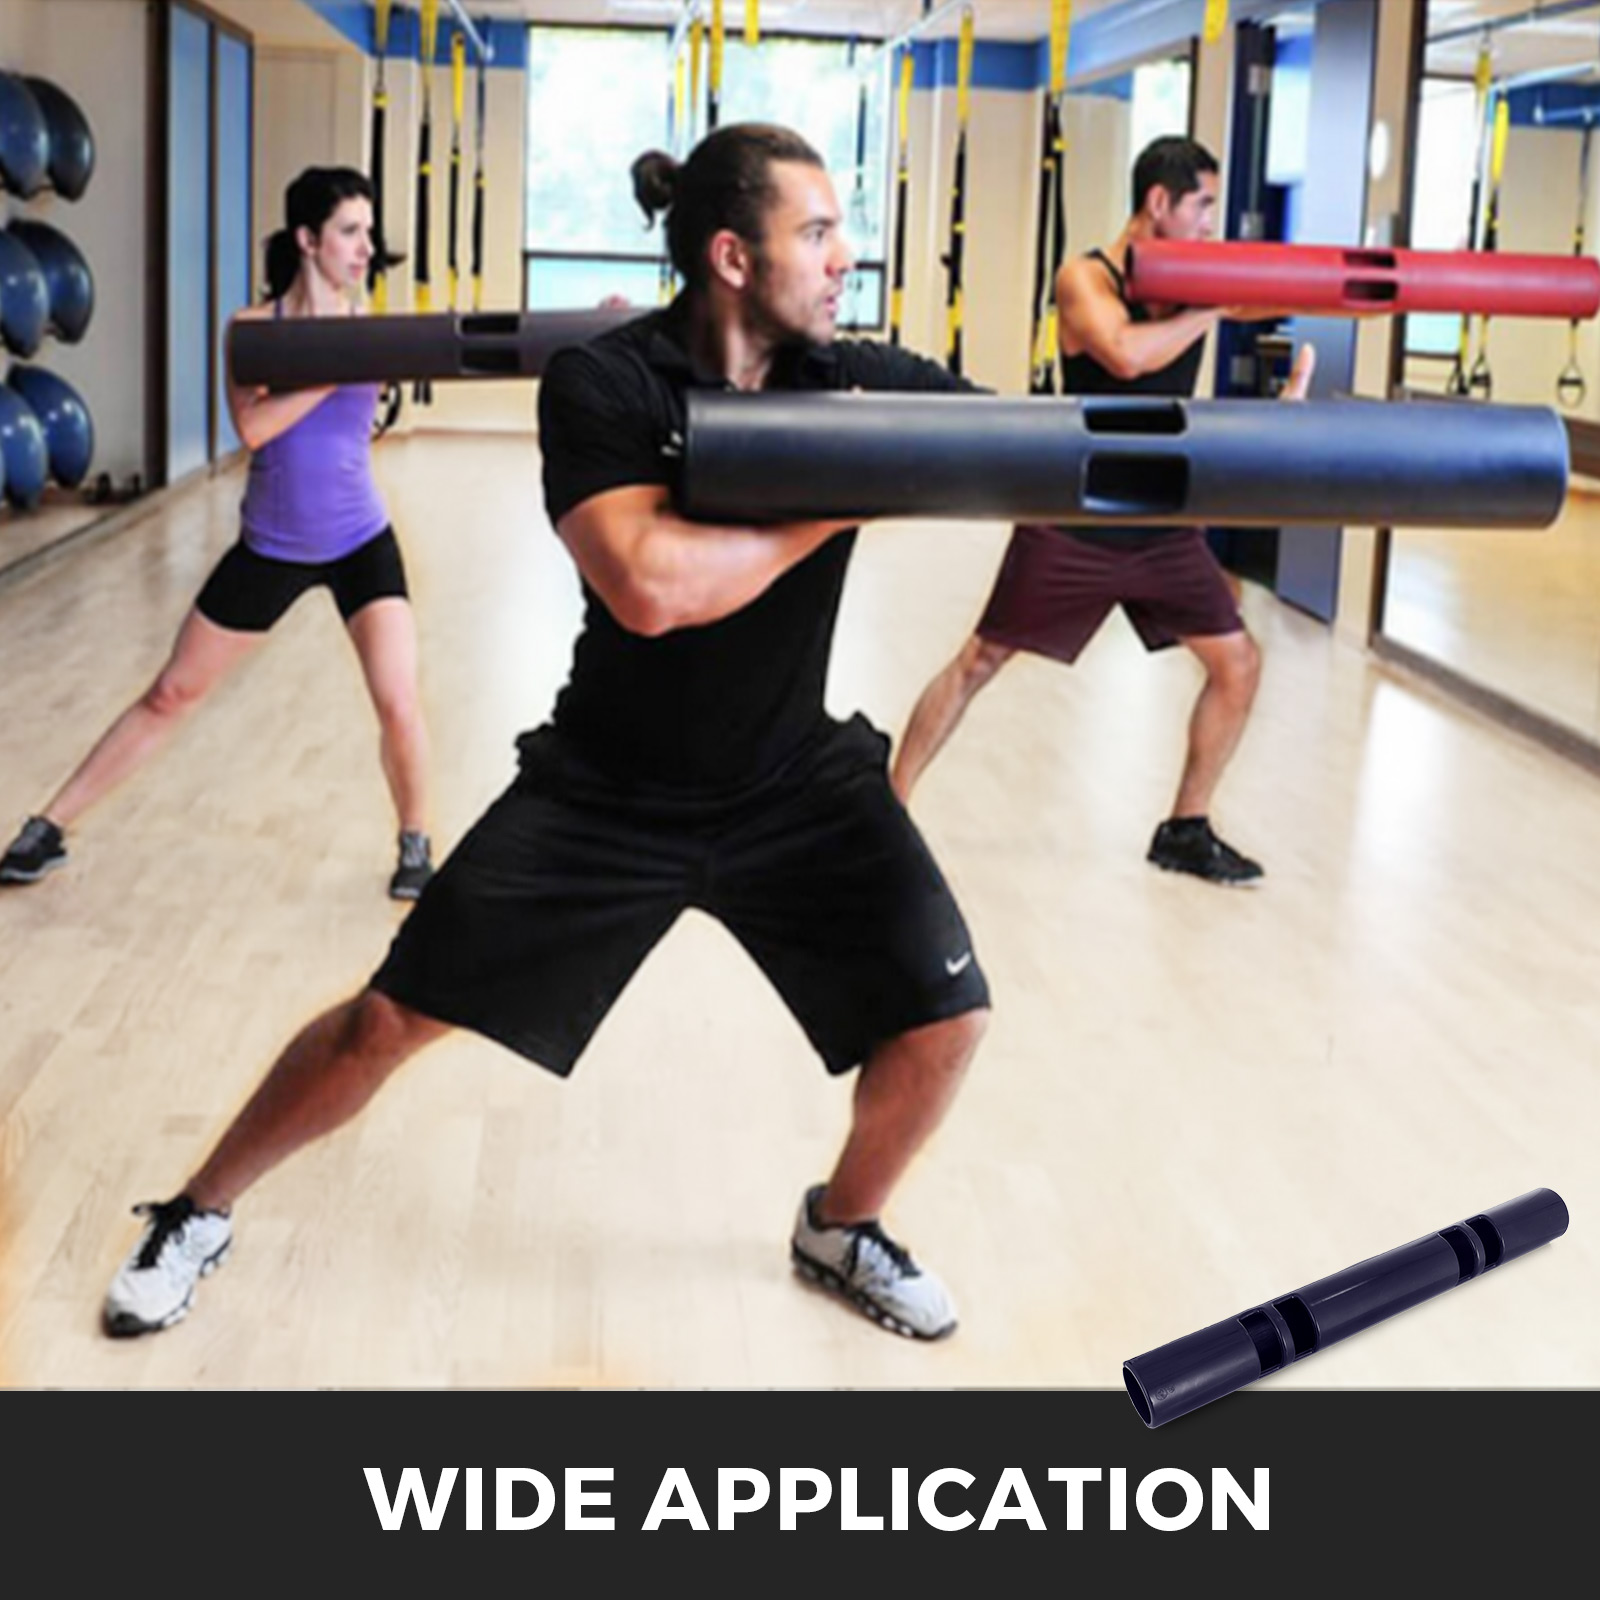 Vipr-Fitpro-Fitness-Tube-Loaded-Movement-Training-weightlifting-4-6-8-10-12-Kg thumbnail 151